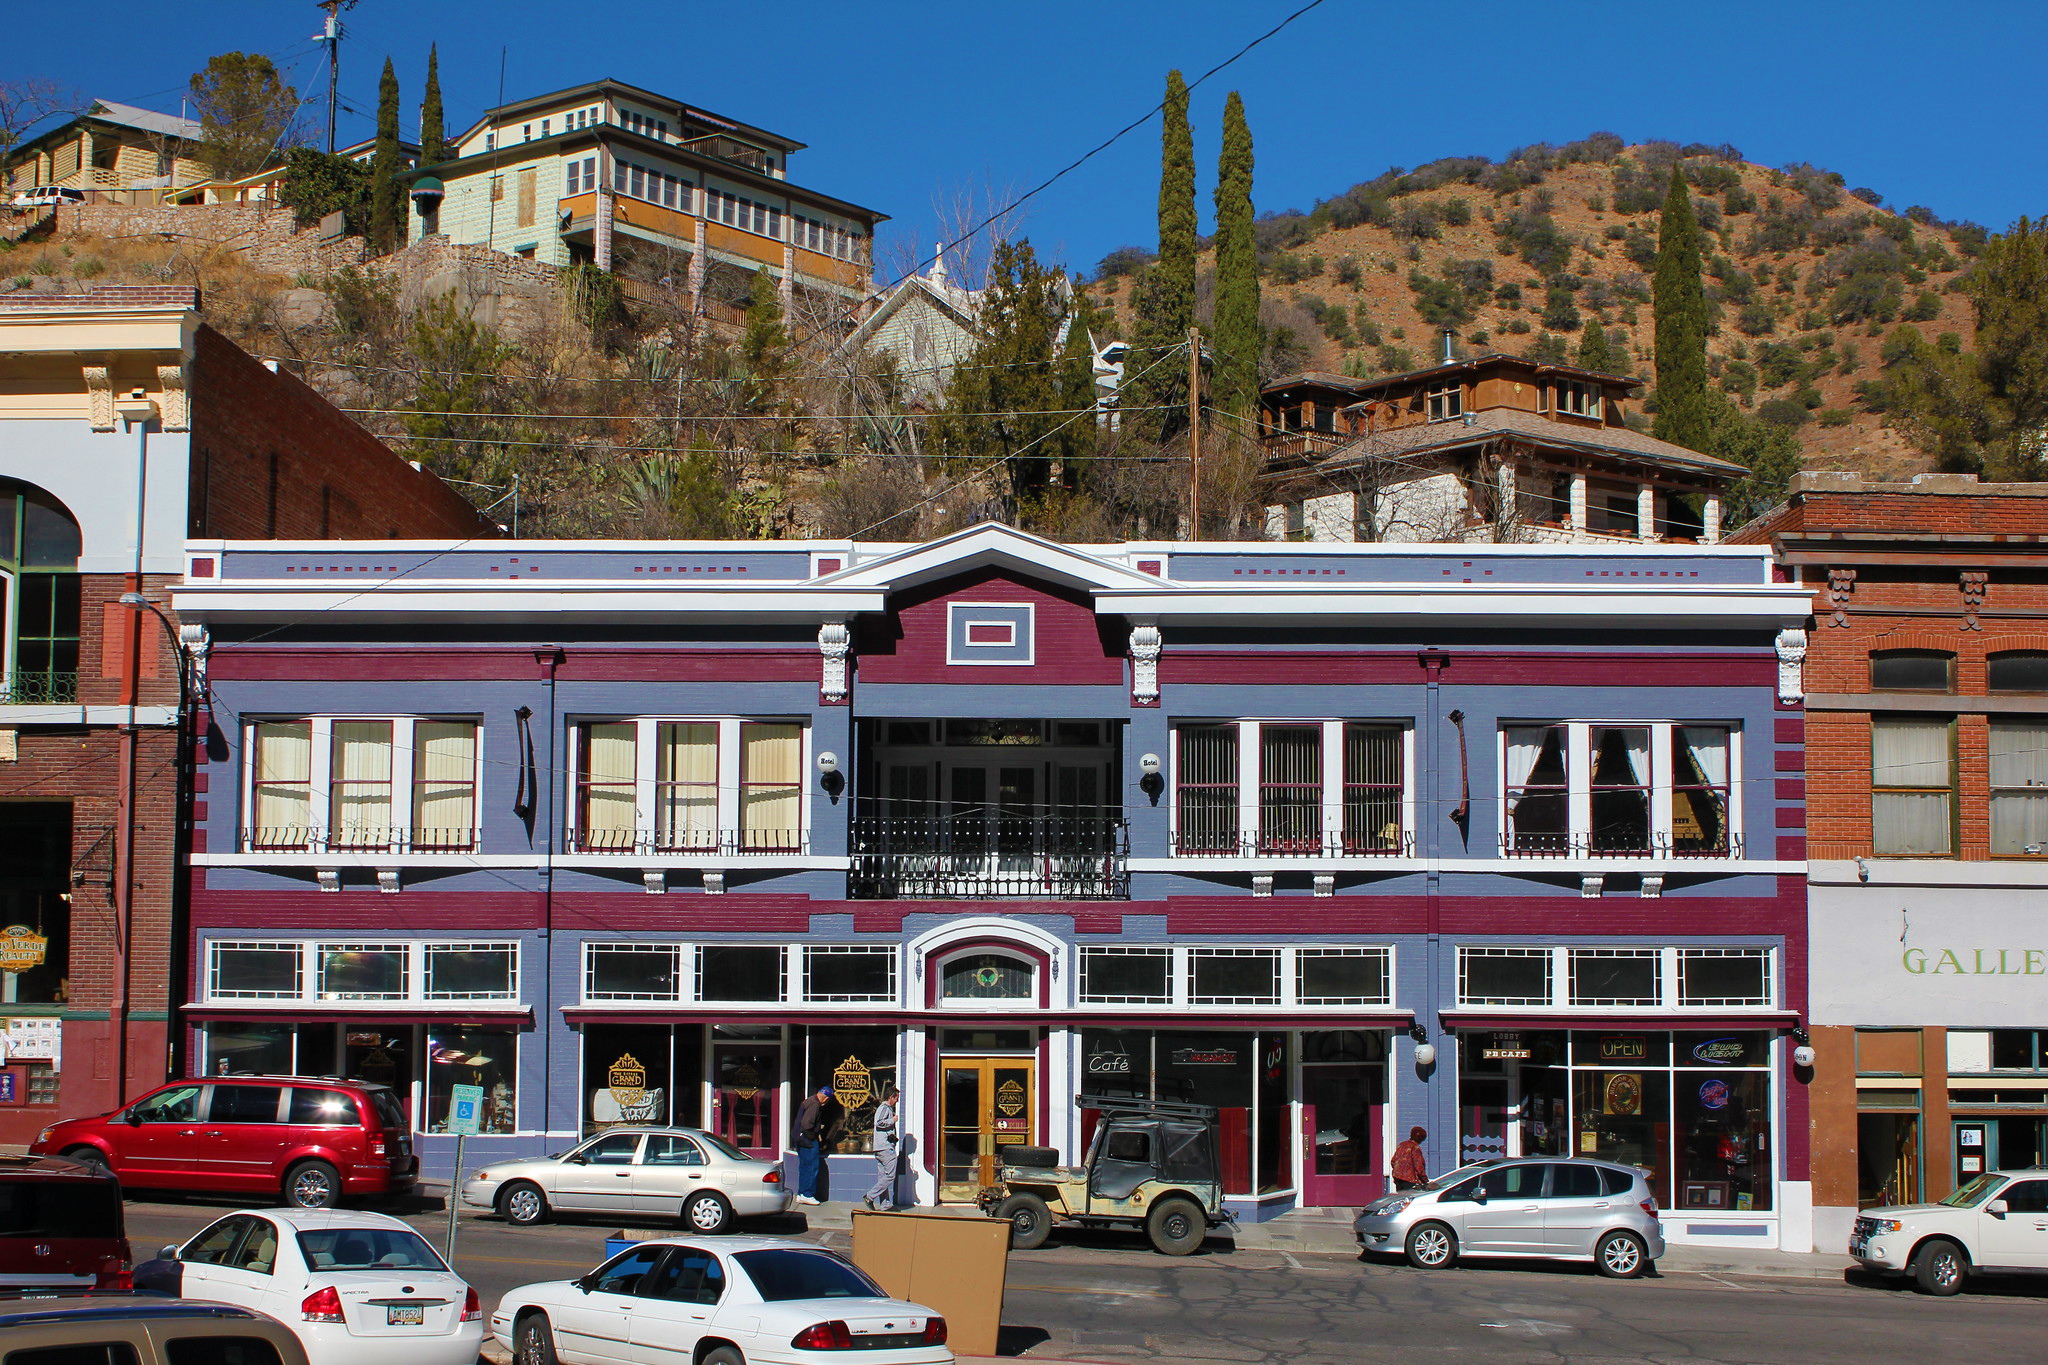 Outside of the Bisbee Grand Hotel.